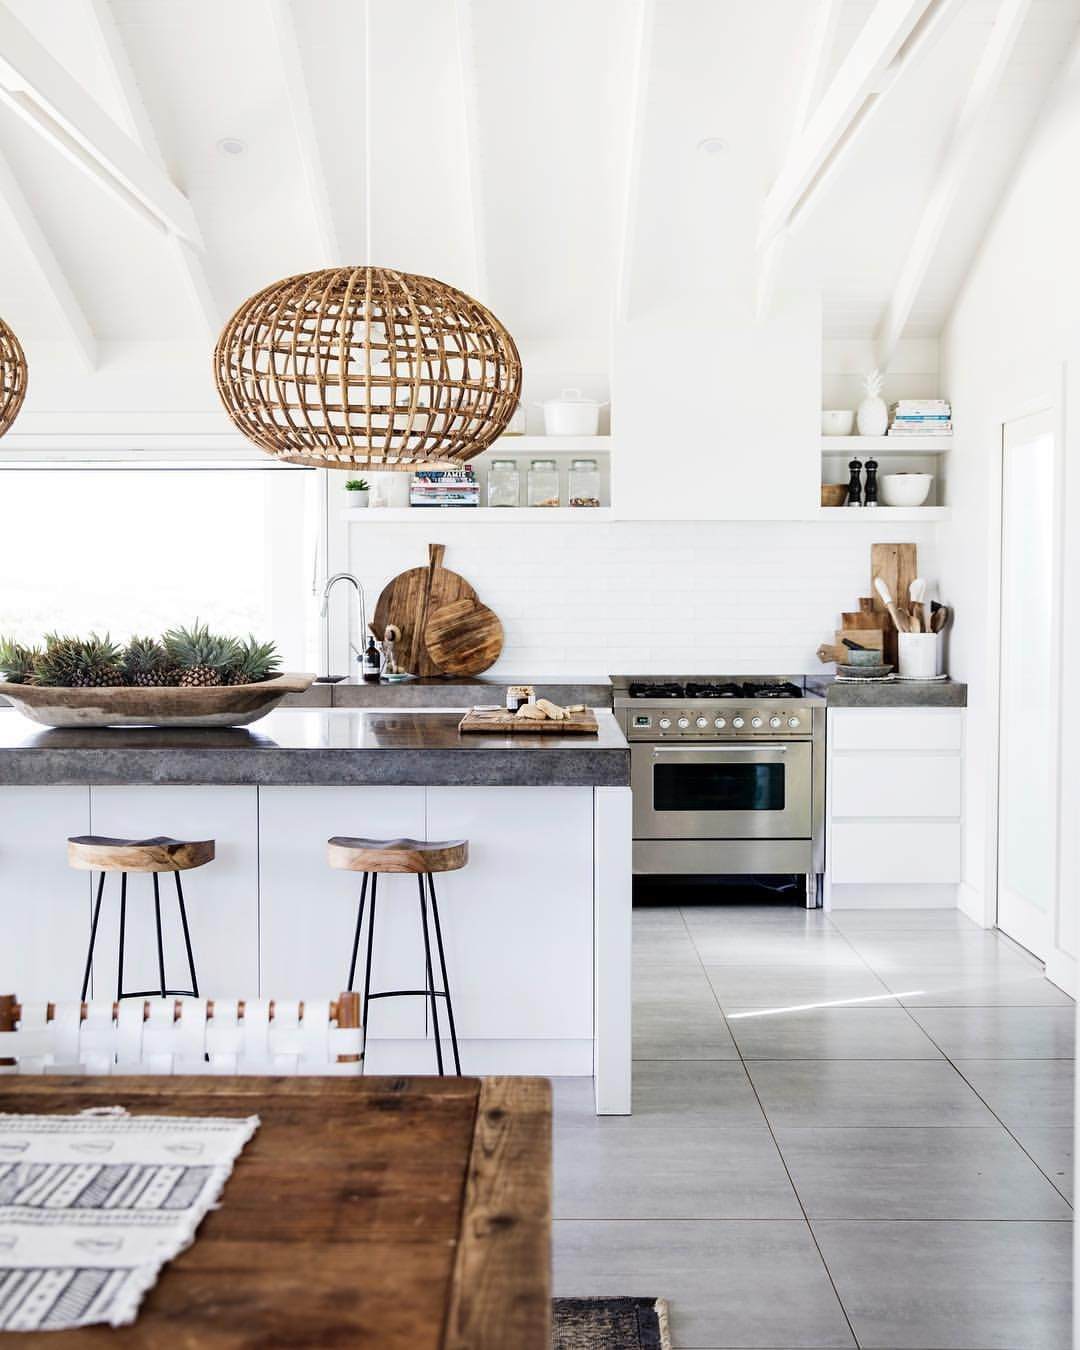 Beach house kitchen. Bohemian kitchen. Exposed beam kitchen. Dream ...